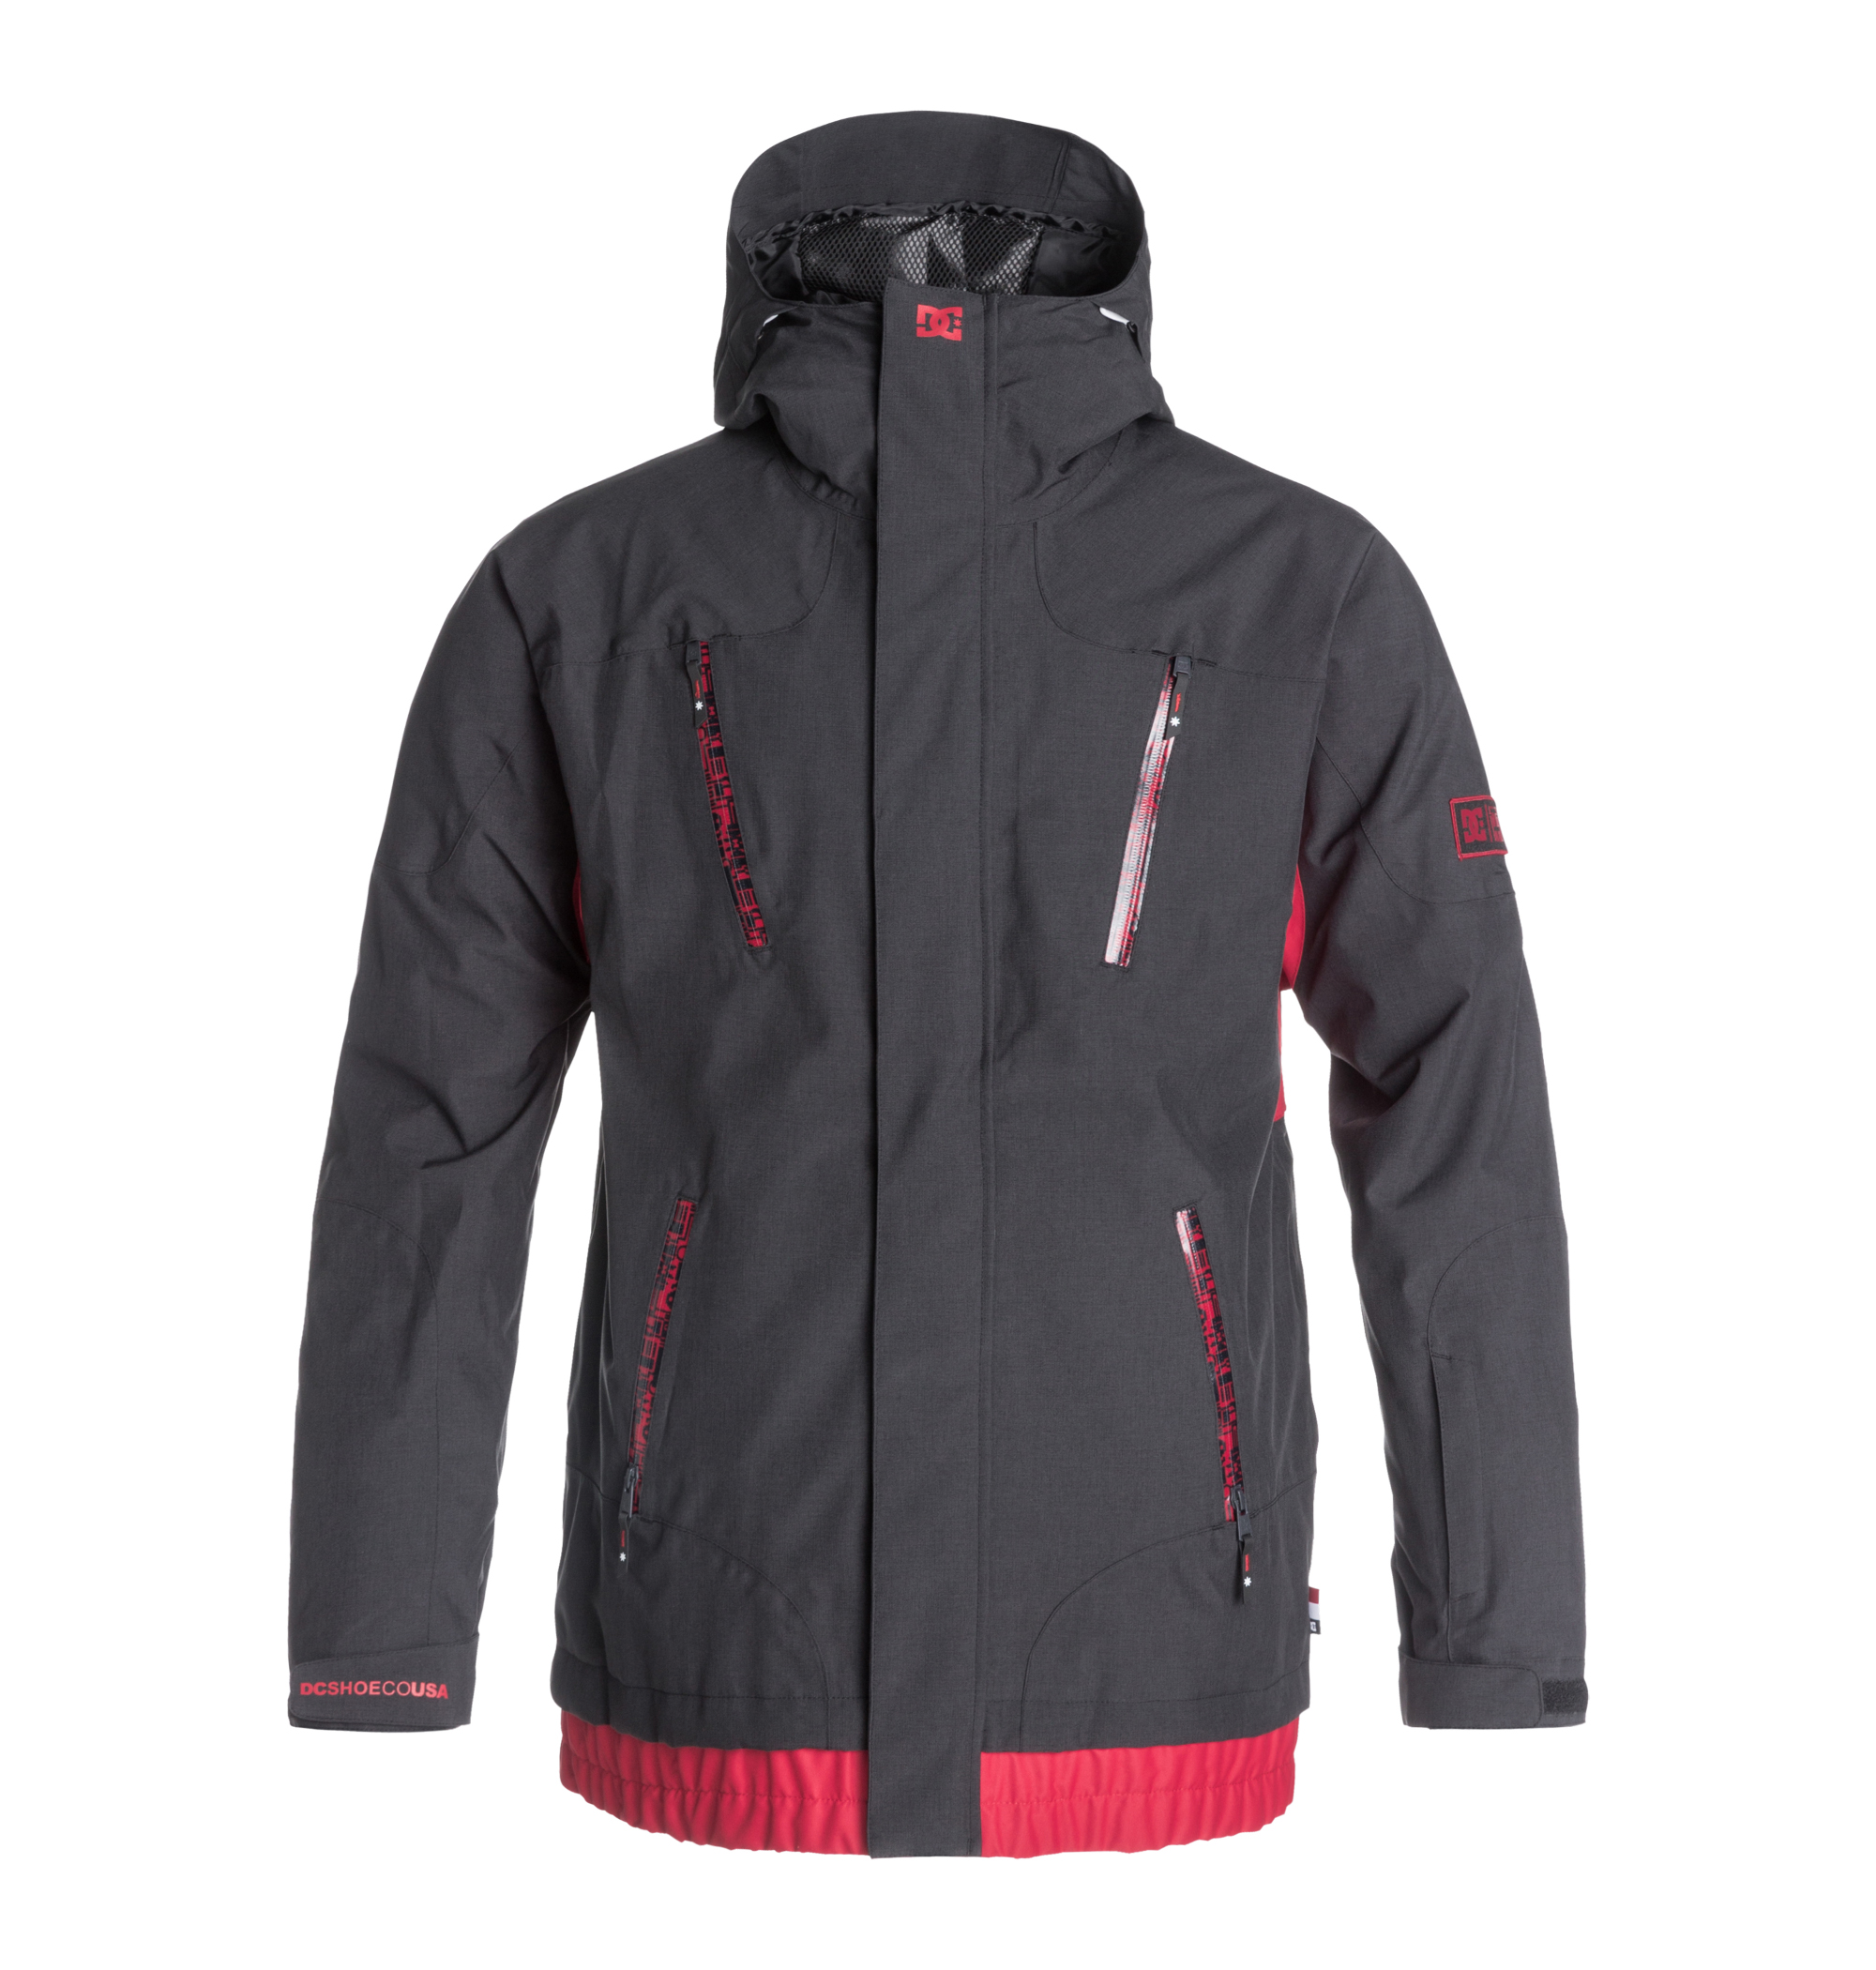 Most Wanted – Win a DC Torstein Corruption jacket!